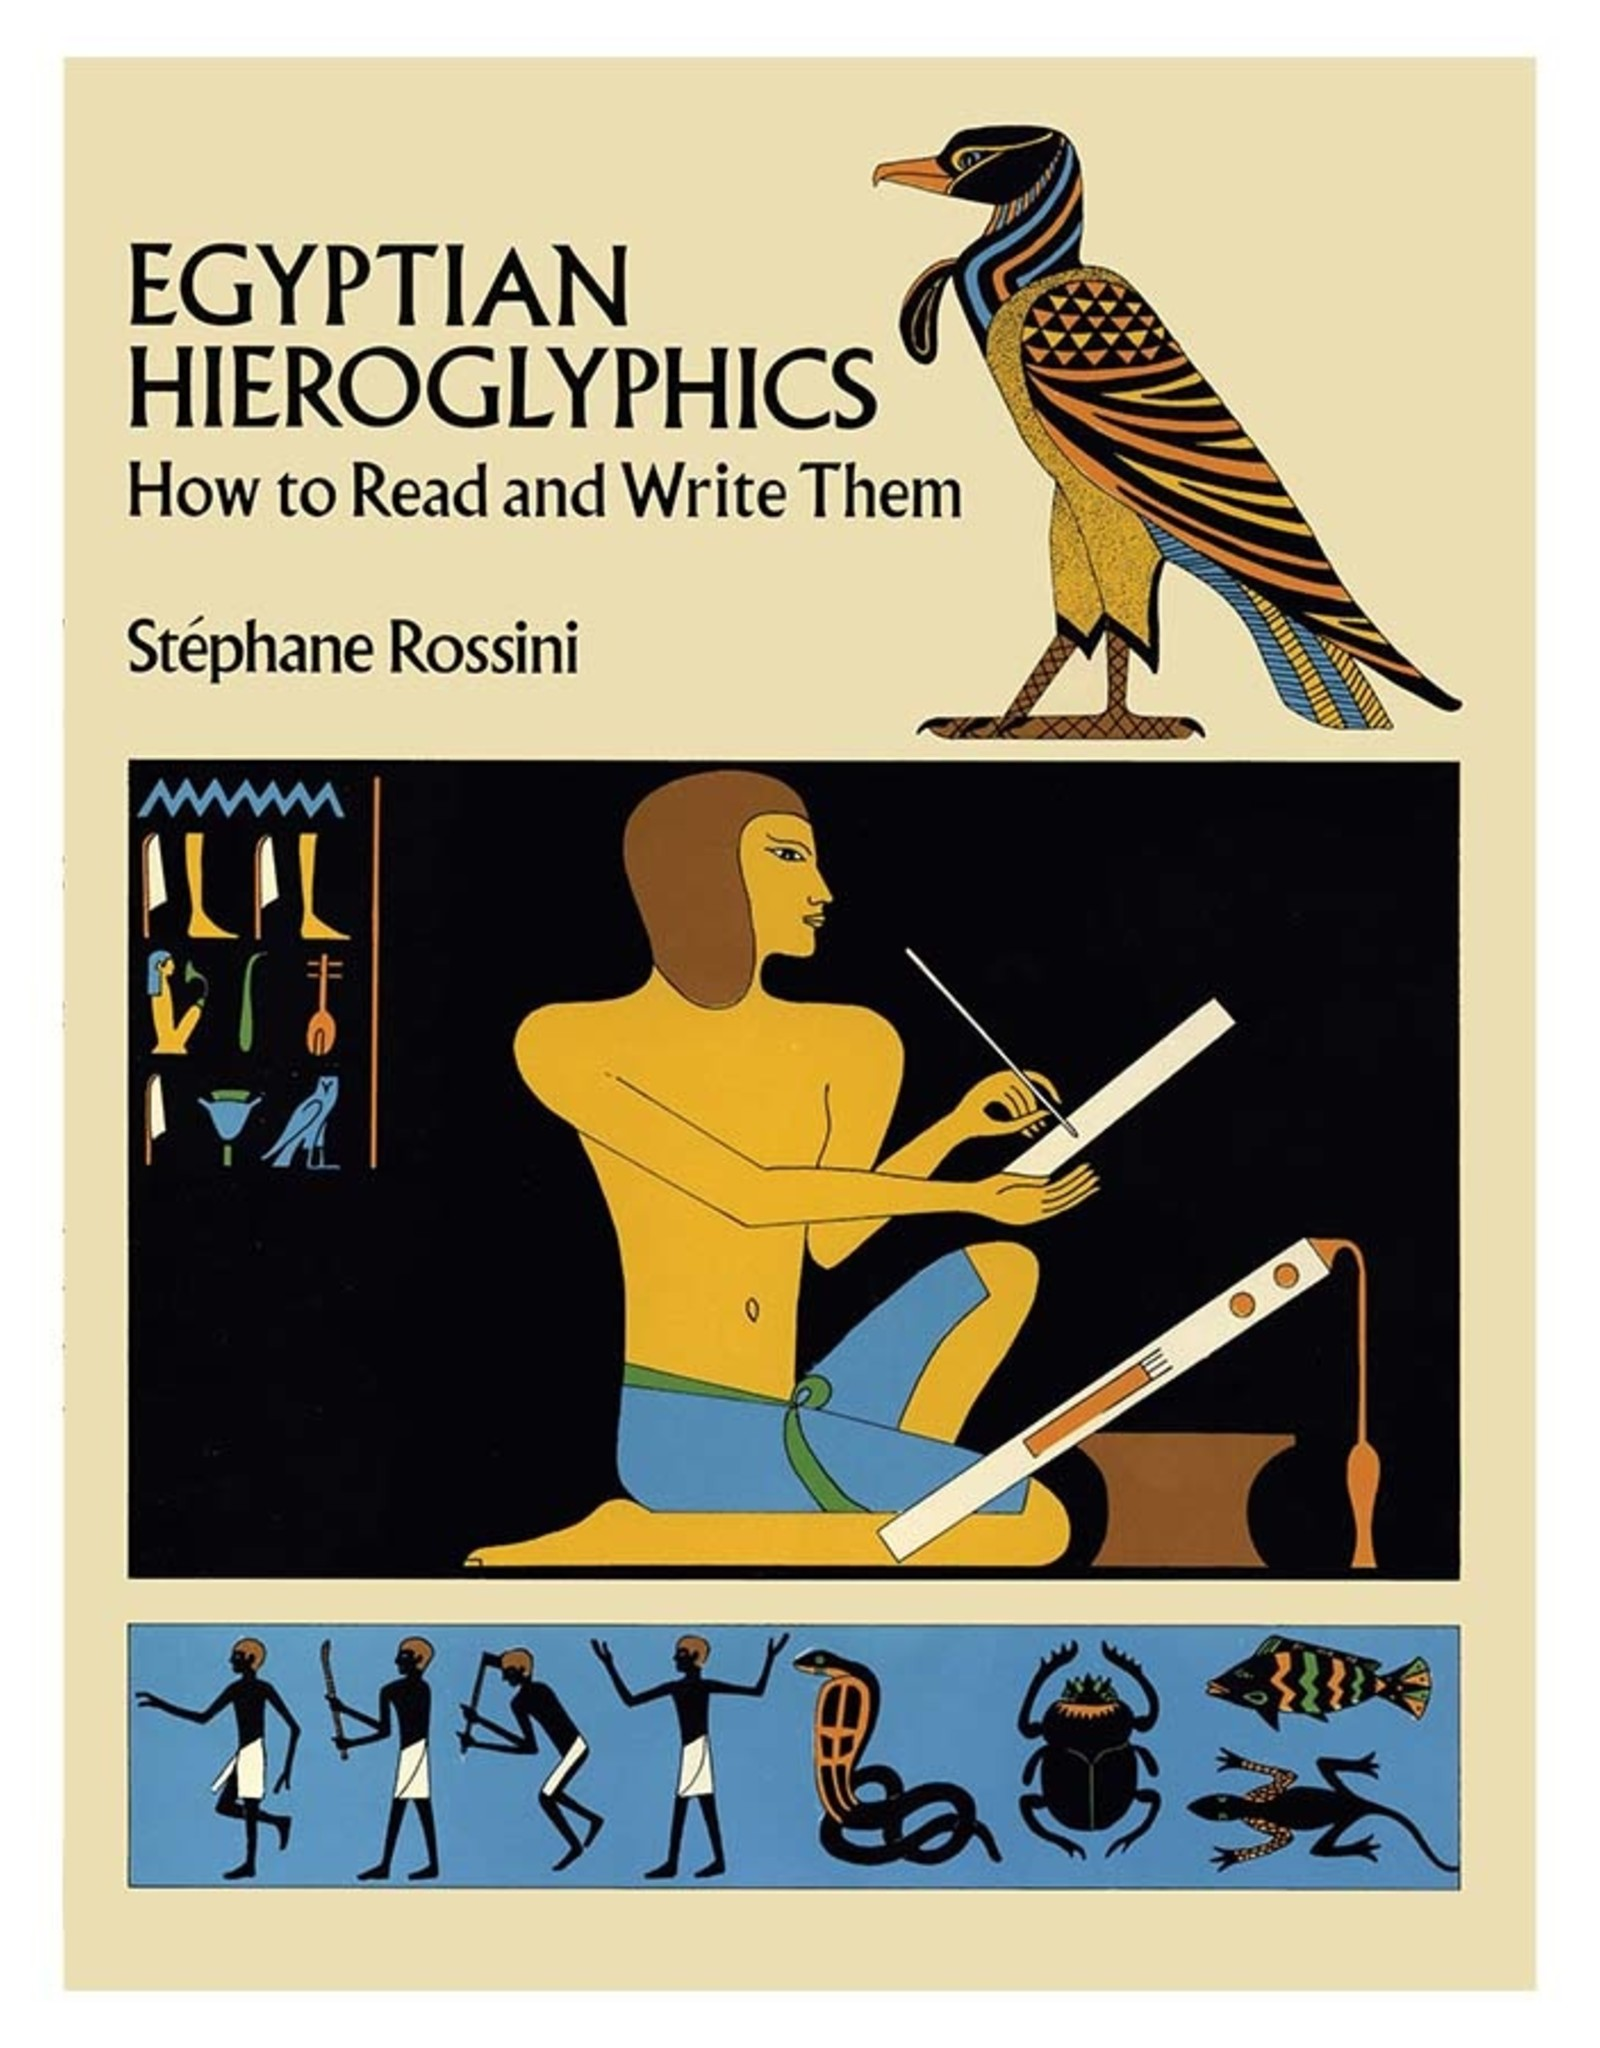 Egyptian Hieroglyphs: How to Read and Write Them